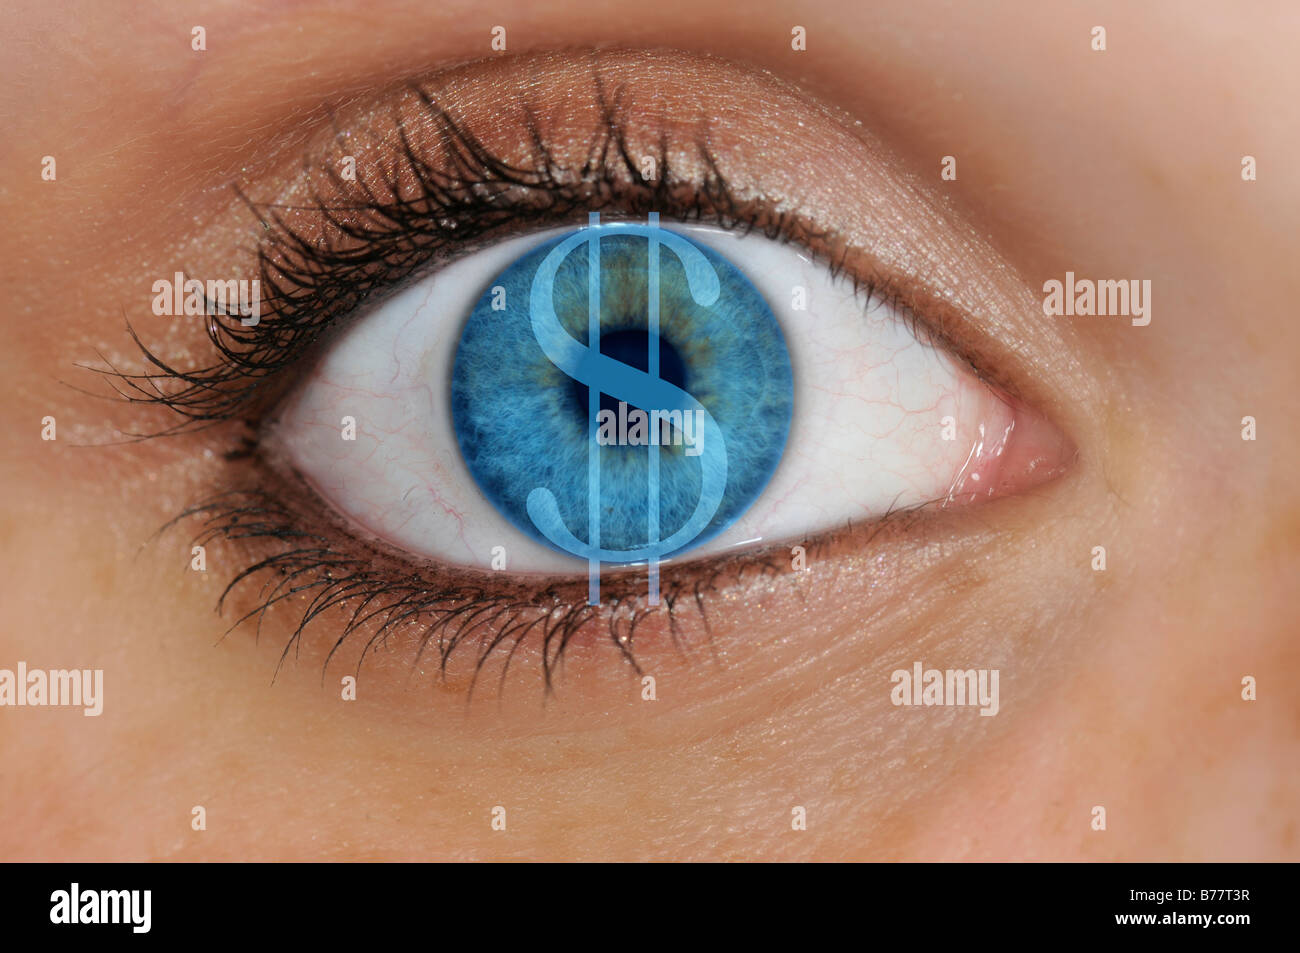 Eye with a dollar symbol superimposed over a blue iris, detail, symbolic for avarice - Stock Image